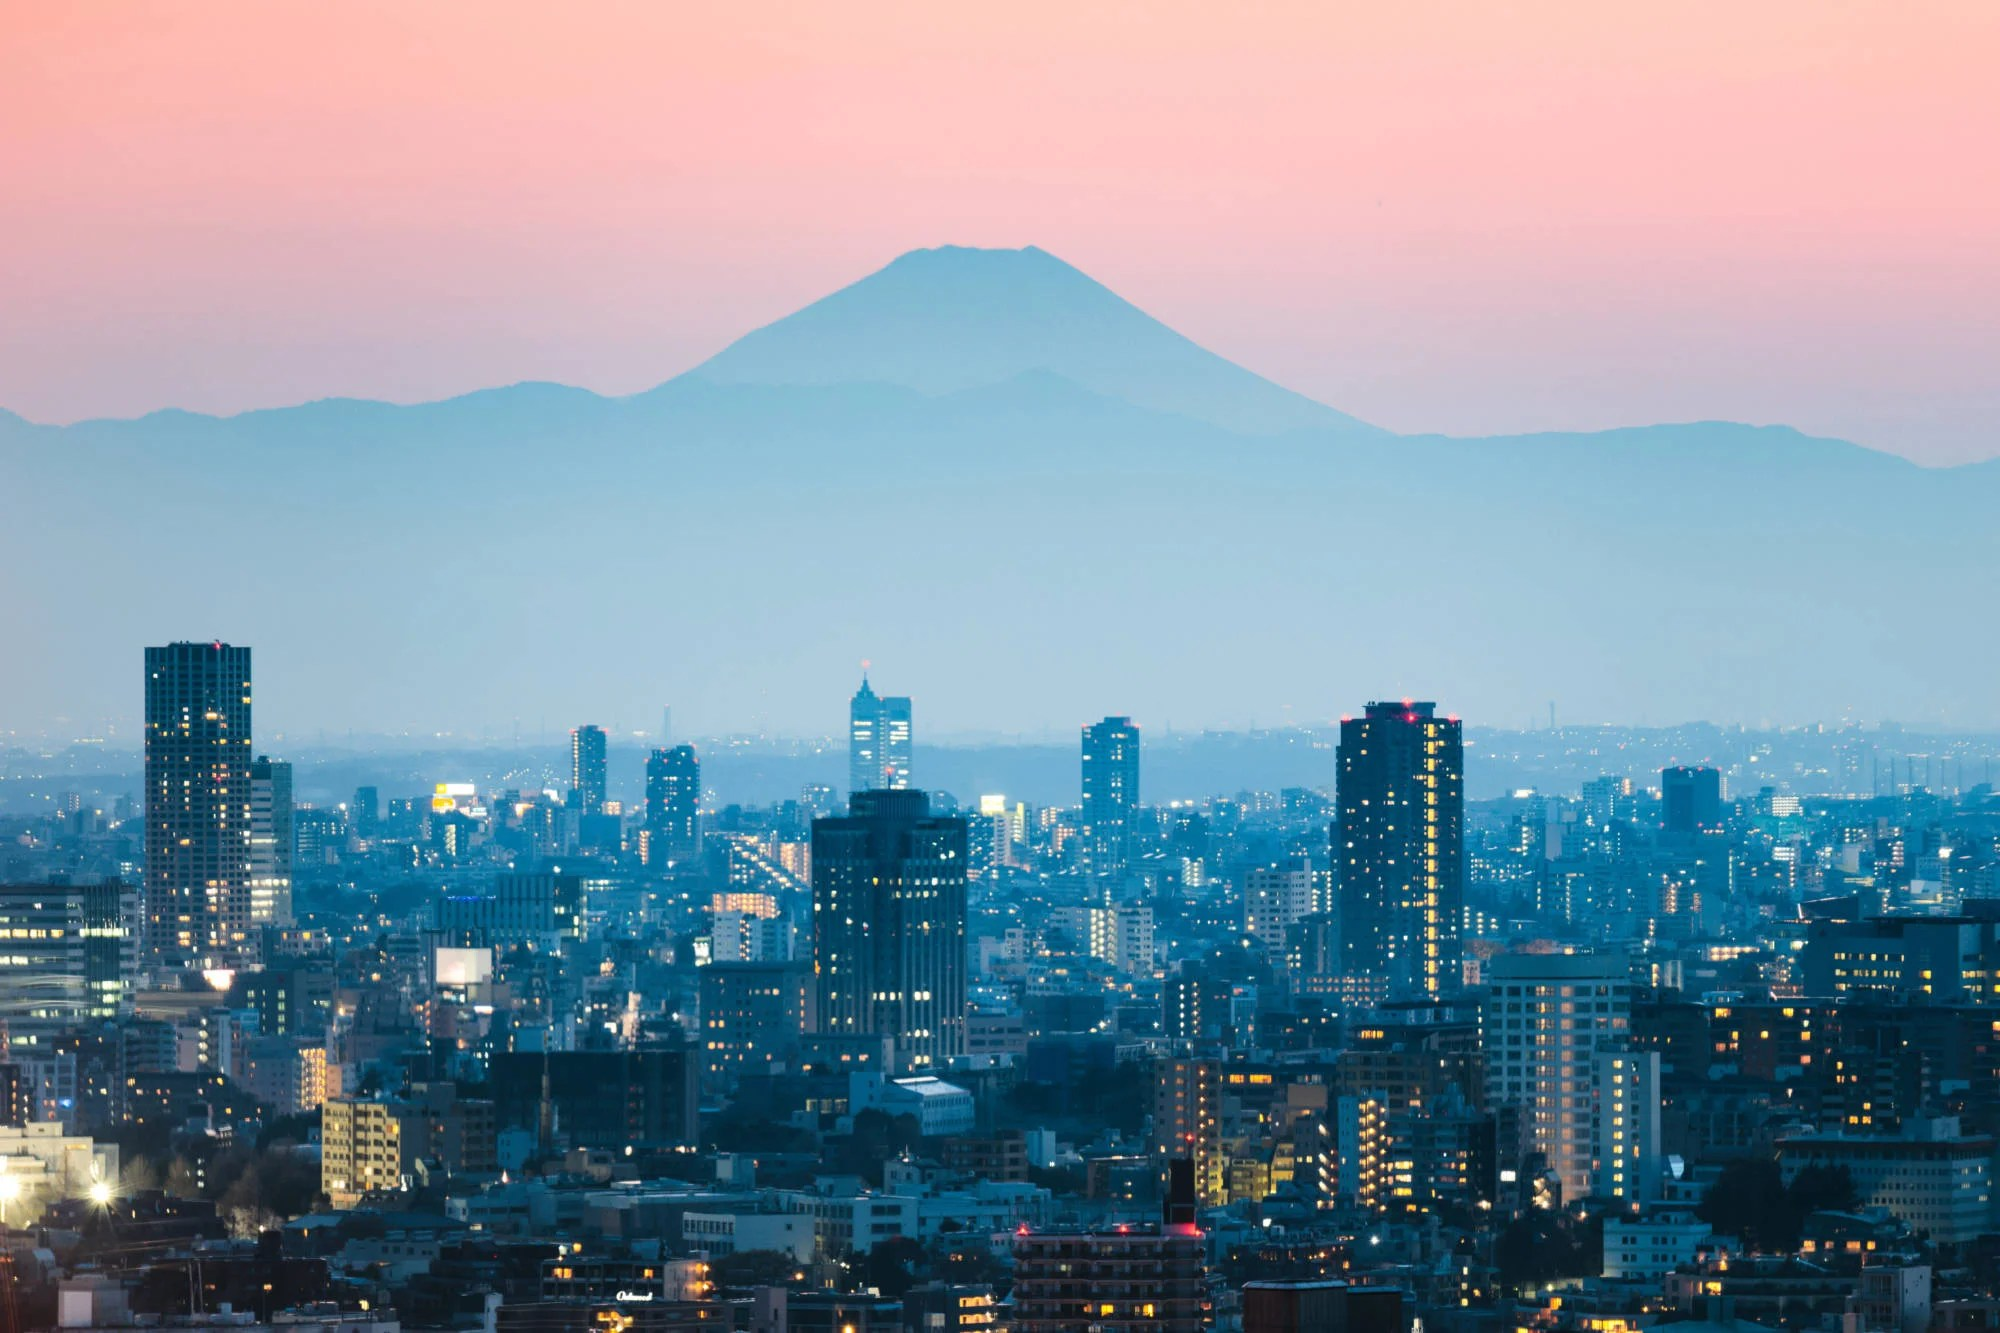 Delta flash sale: Flights to Tokyo have dropped to 30k SkyMiles R/T